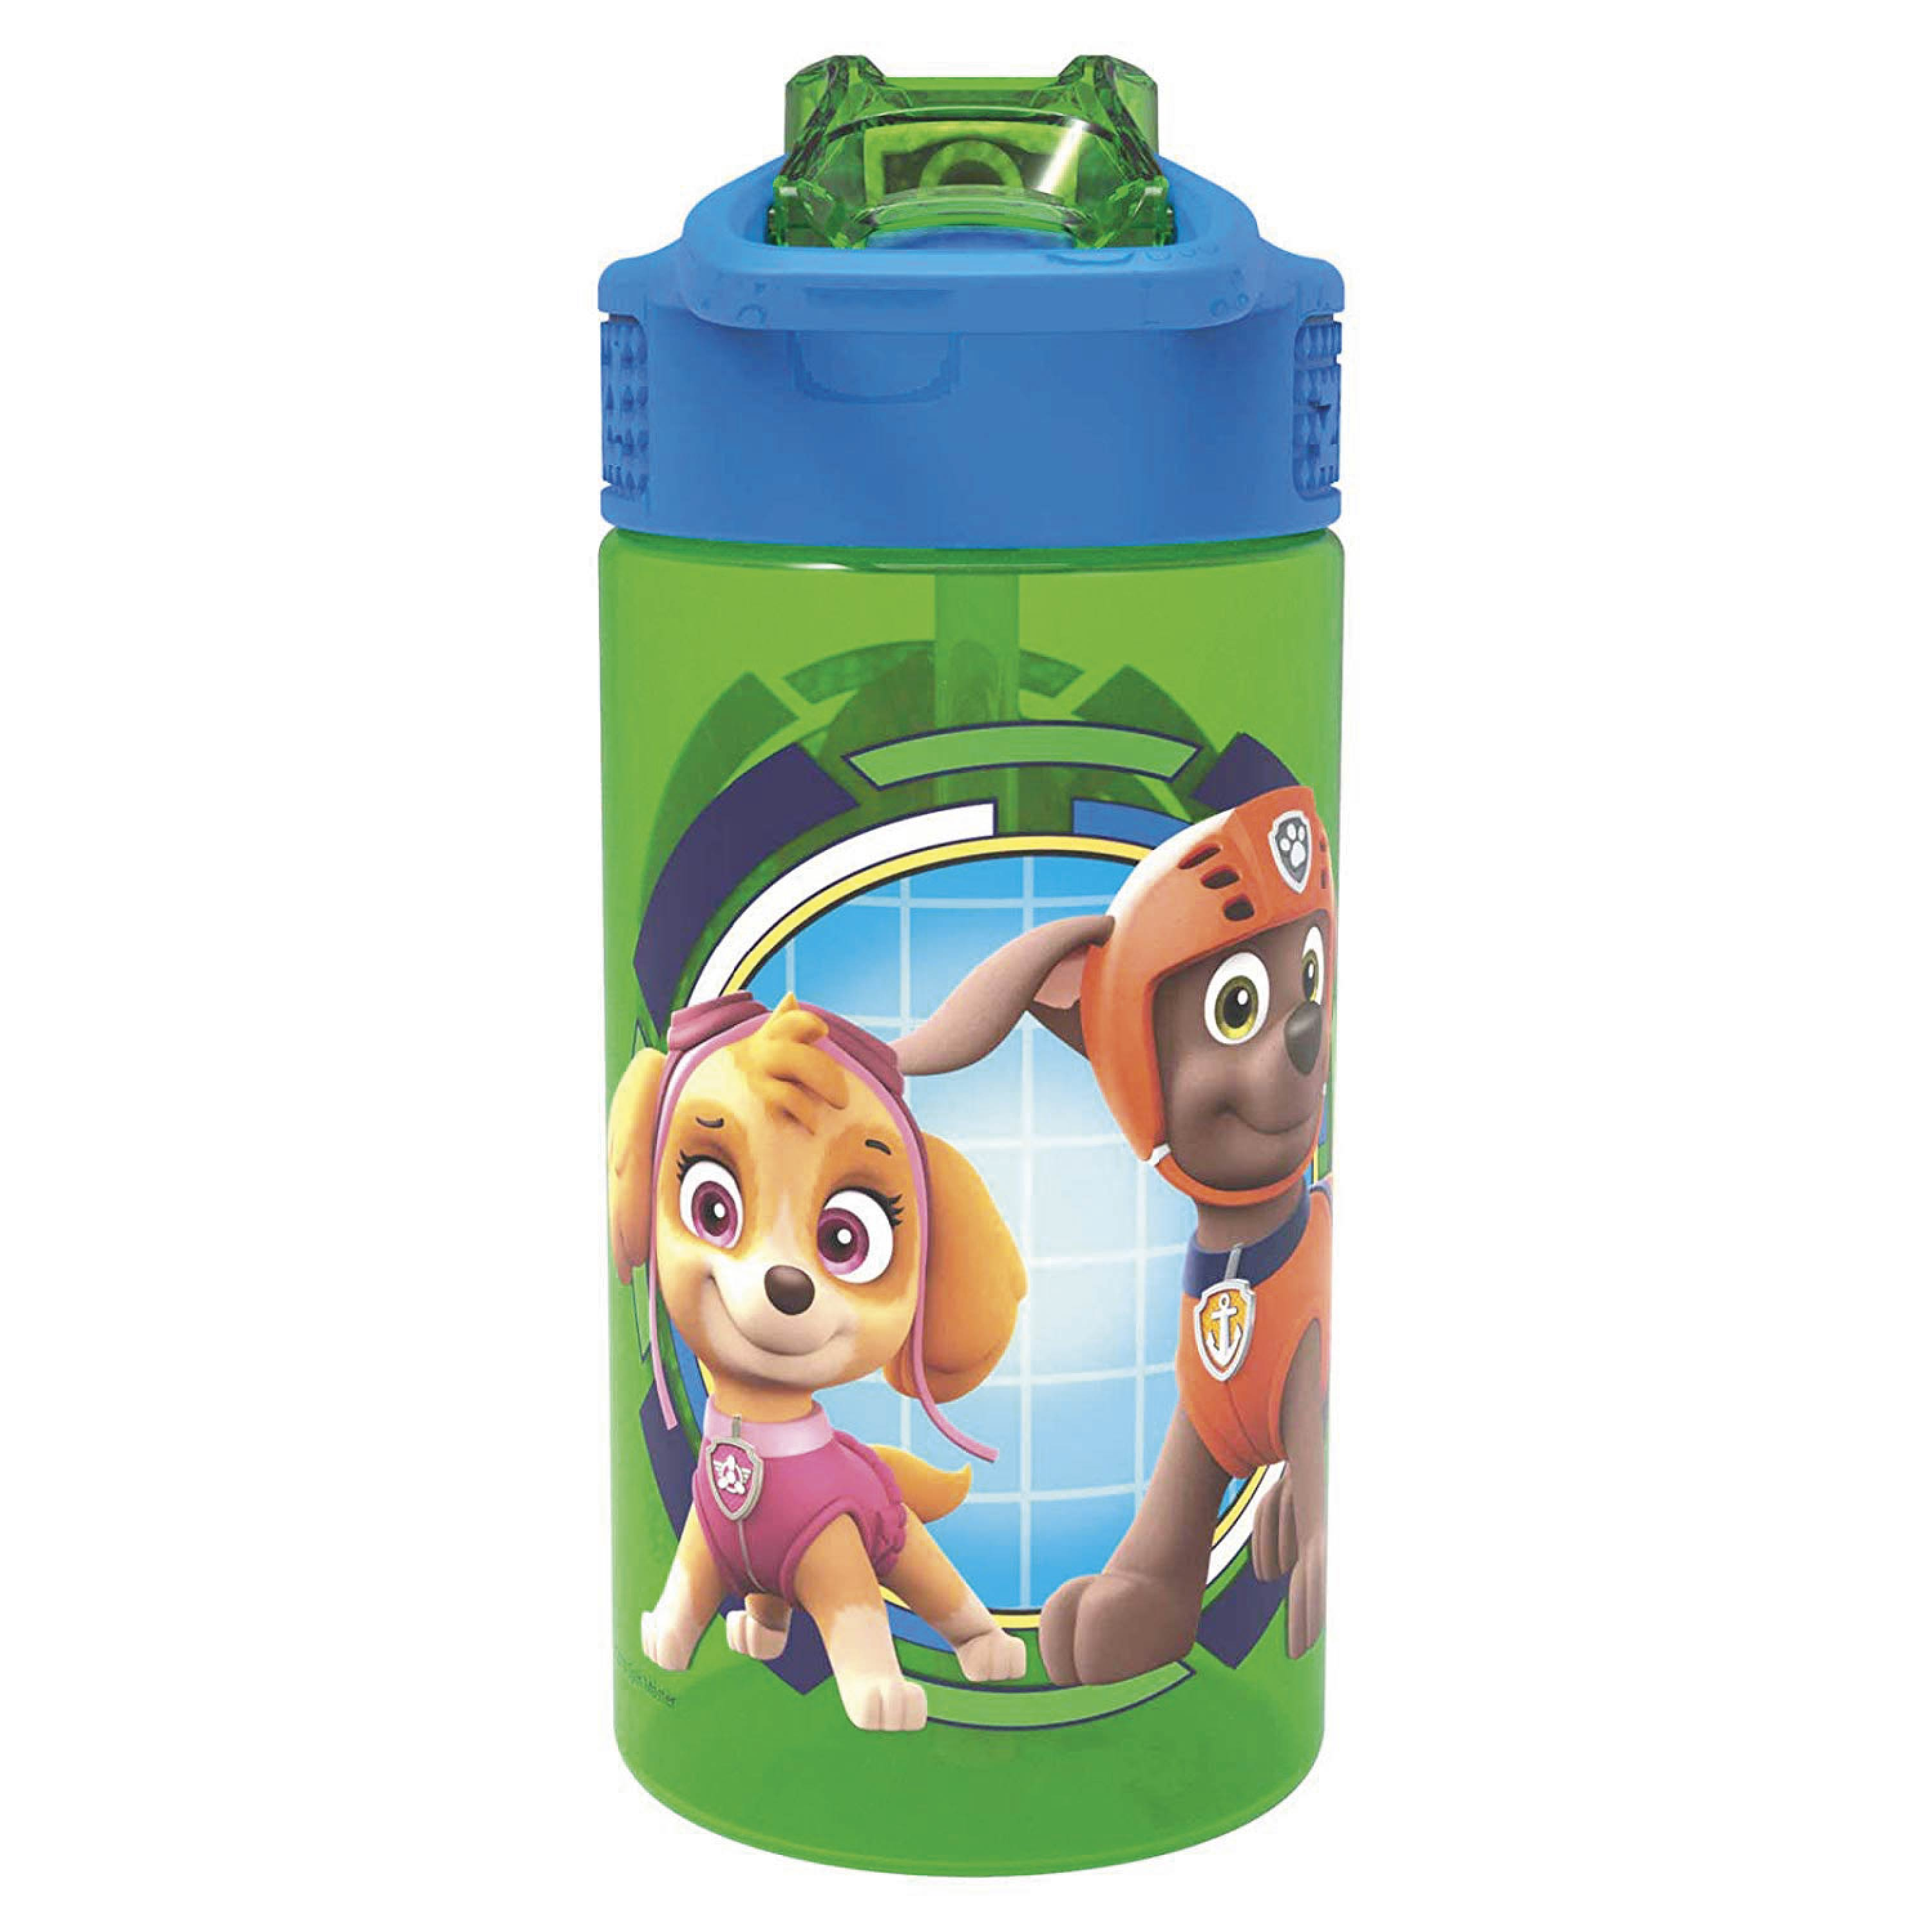 Paw Patrol 16 ounce Water Bottle, Rocky, Rubble & Chase slideshow image 5